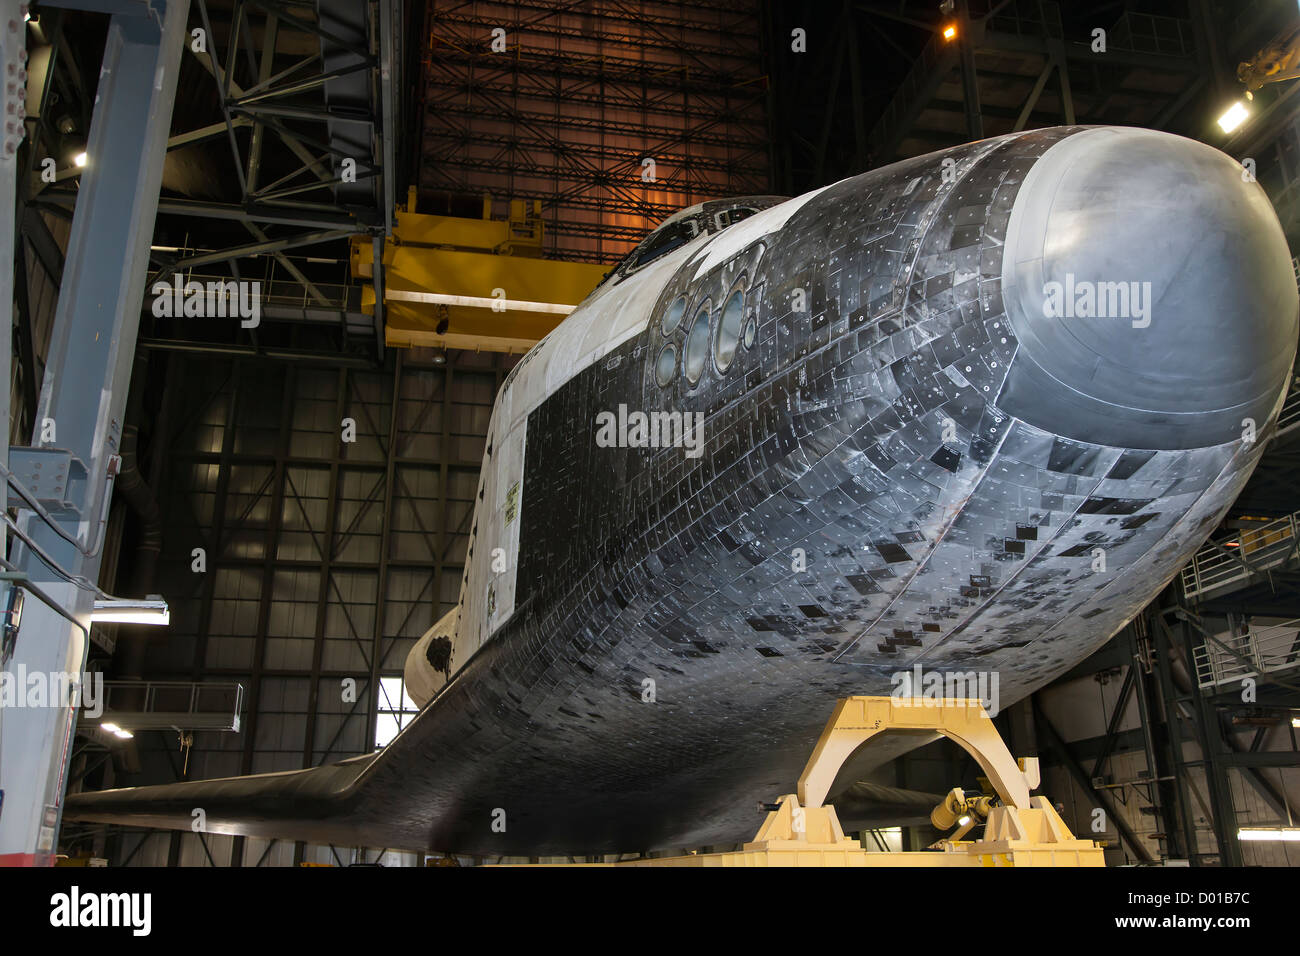 space shuttle atlantis which is orbiter - photo #30